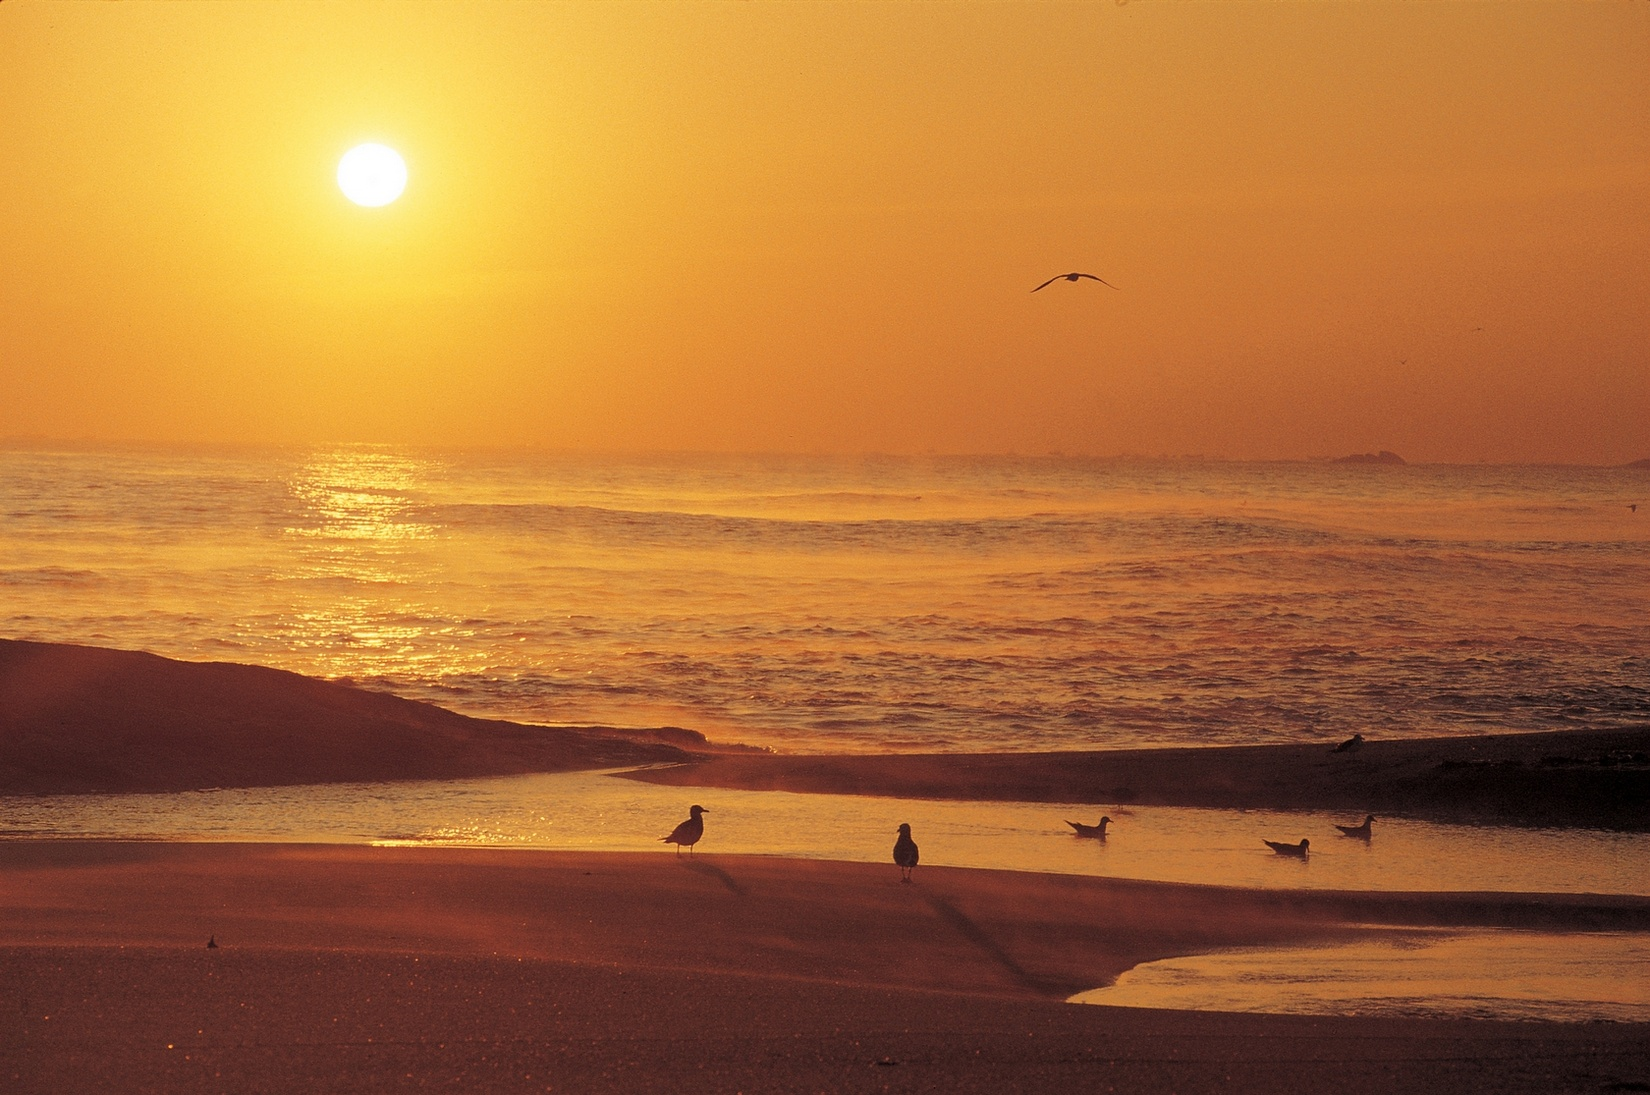 Free download high resolution image - free image free photo free stock image public domain picture -coucher de soleil coloré à la banque de la plage avec des silhouettes d'oiseaux